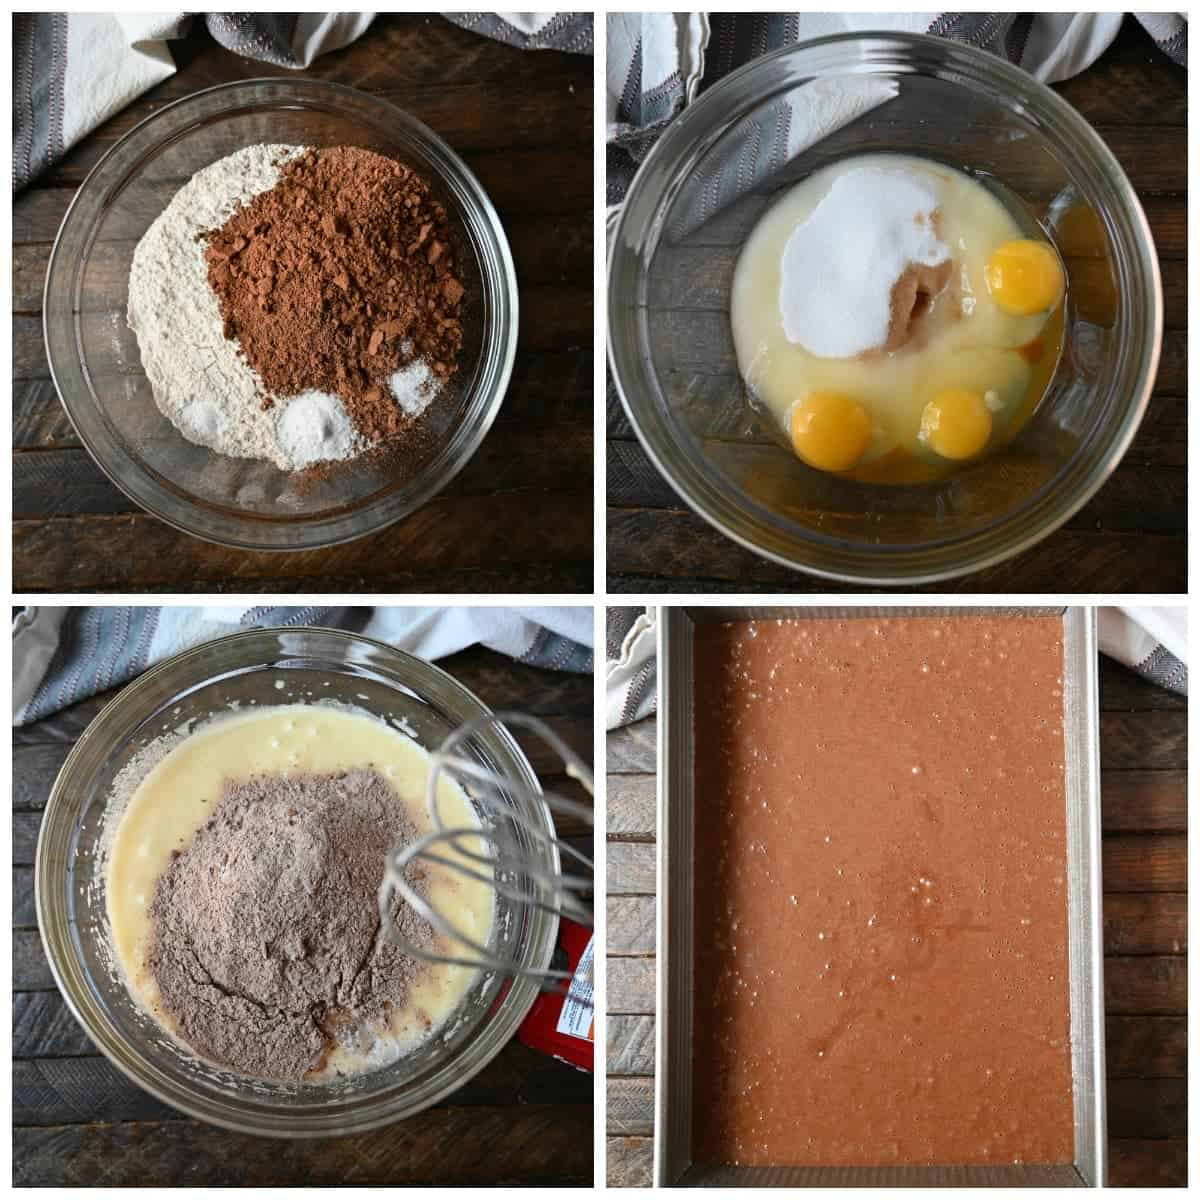 Four process photos. First one, dry ingredients in a medium bowl. Second one, wet ingredients added to a bowl and mixed. Third one, dry ingredients added to wet ingredients and mixed together with a hand mixer. Fourth one, cake batter poured in a 9x13 metal cake pan.